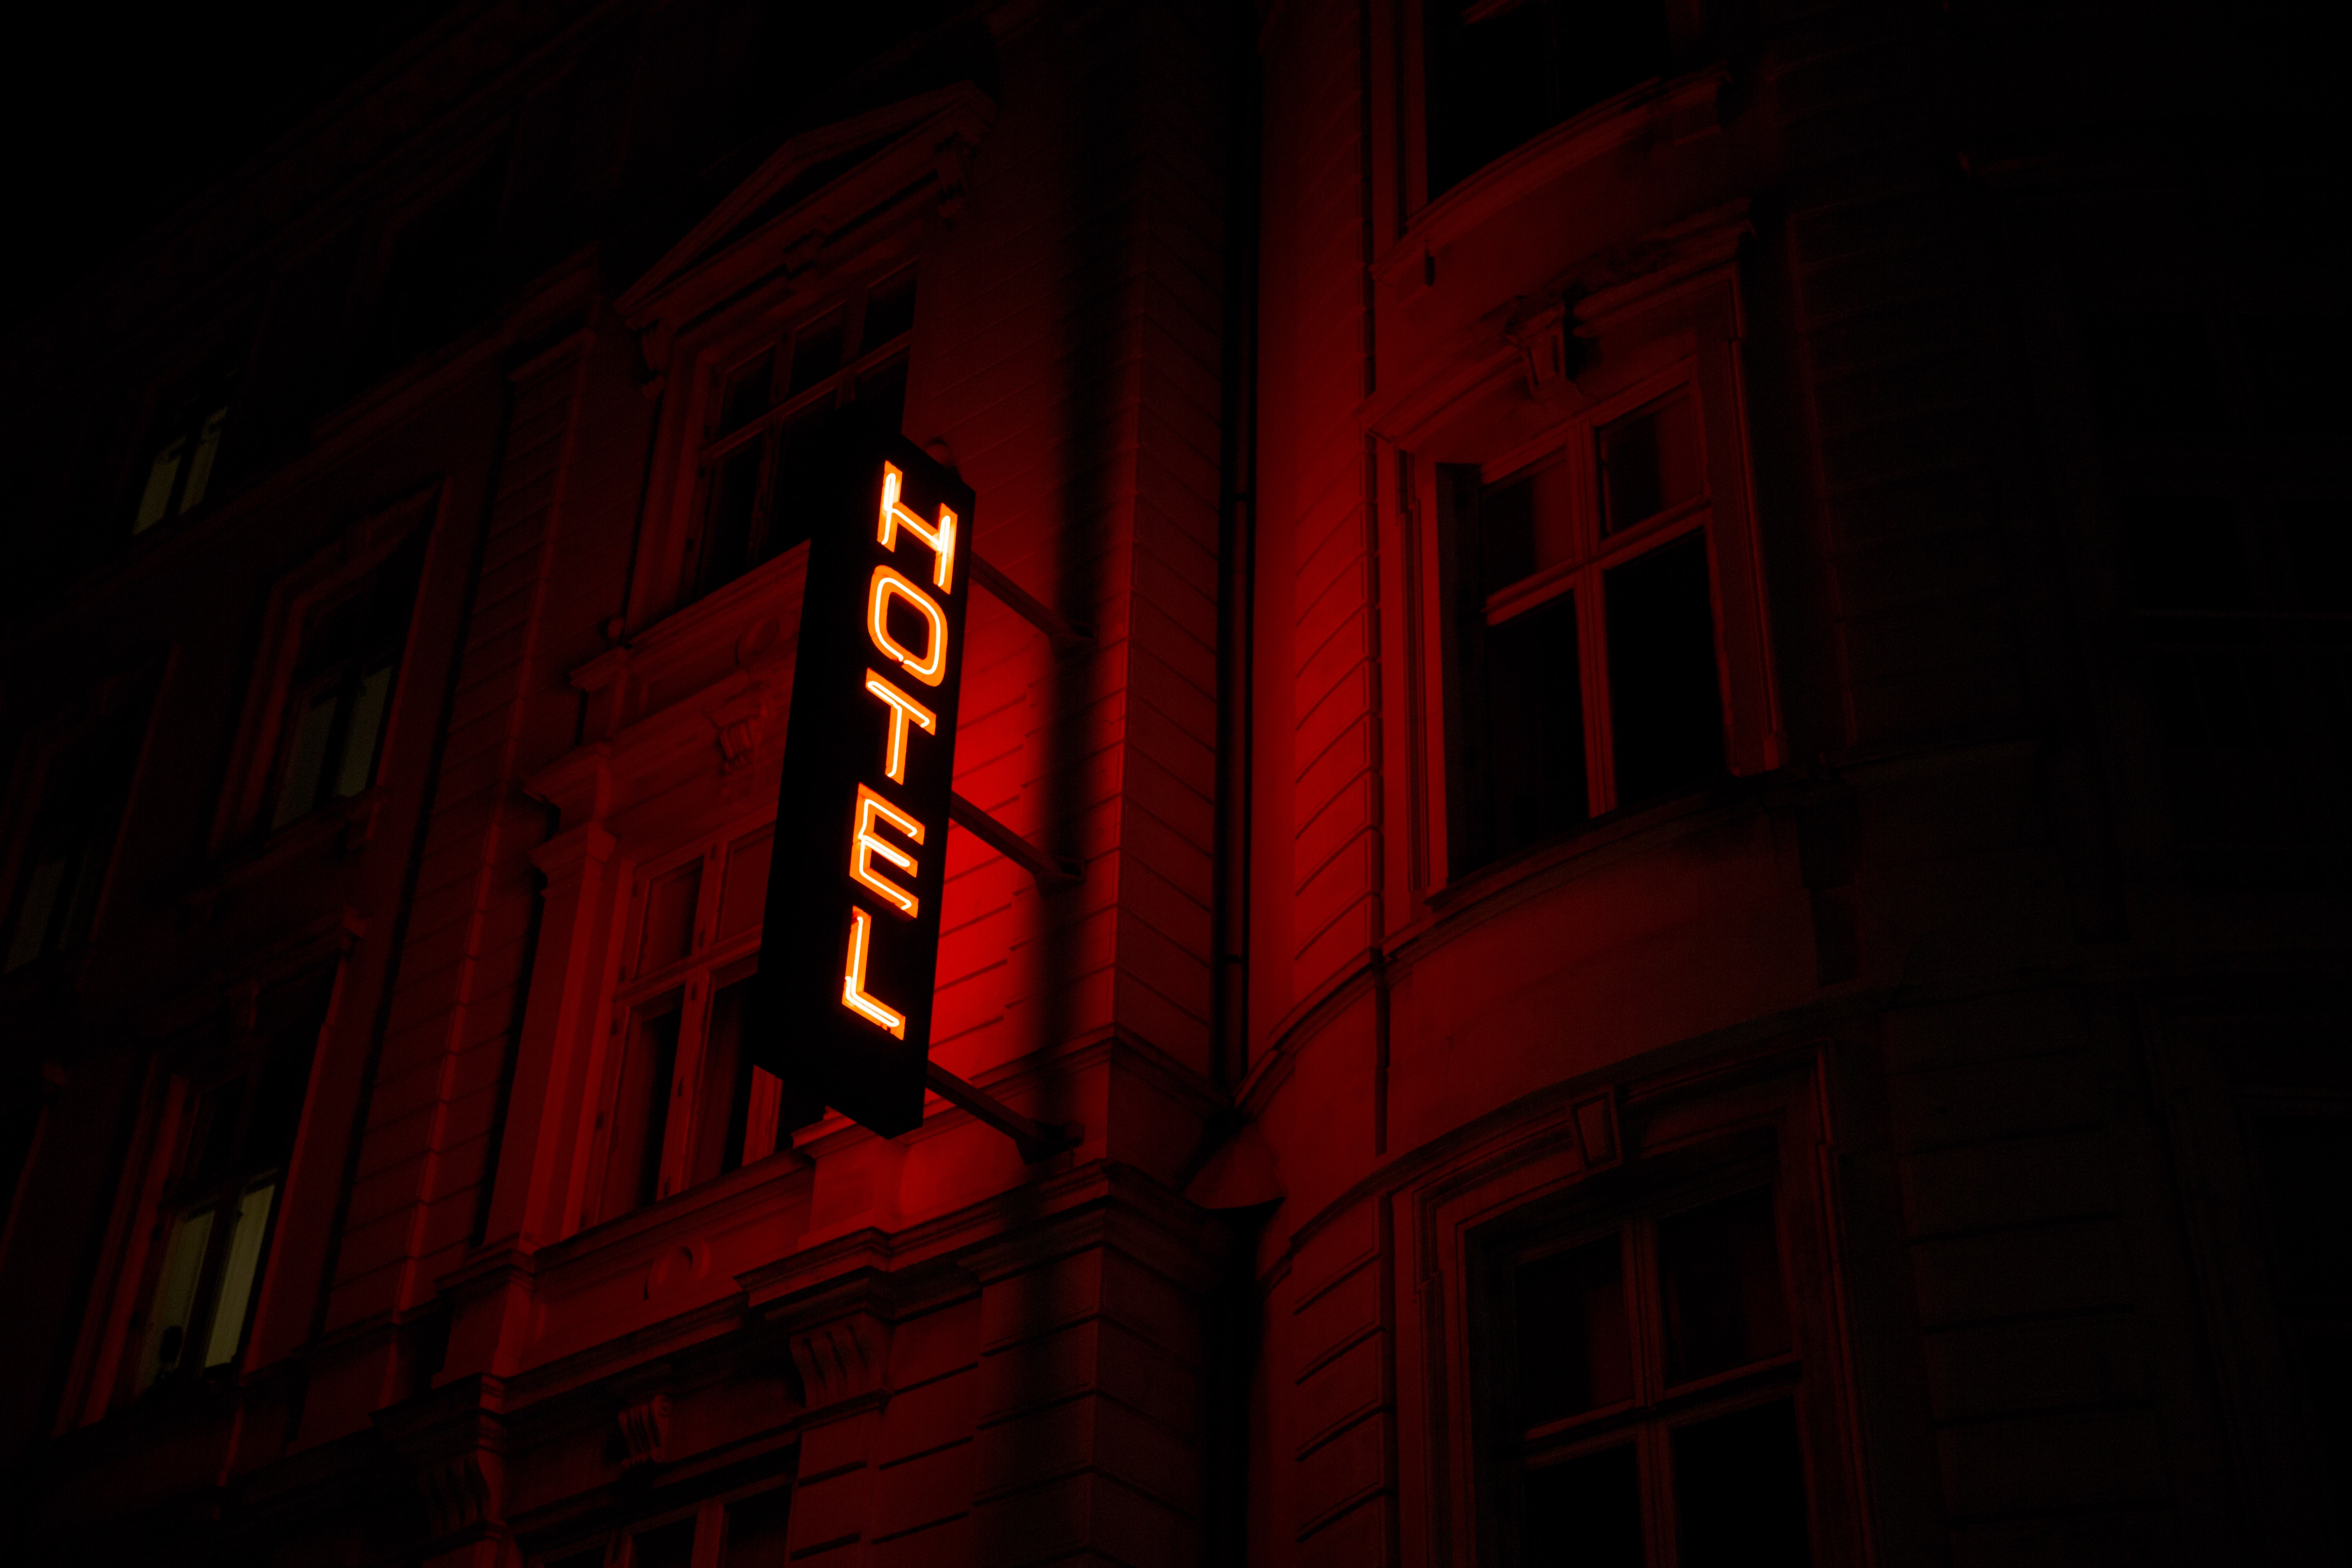 red hotel signage